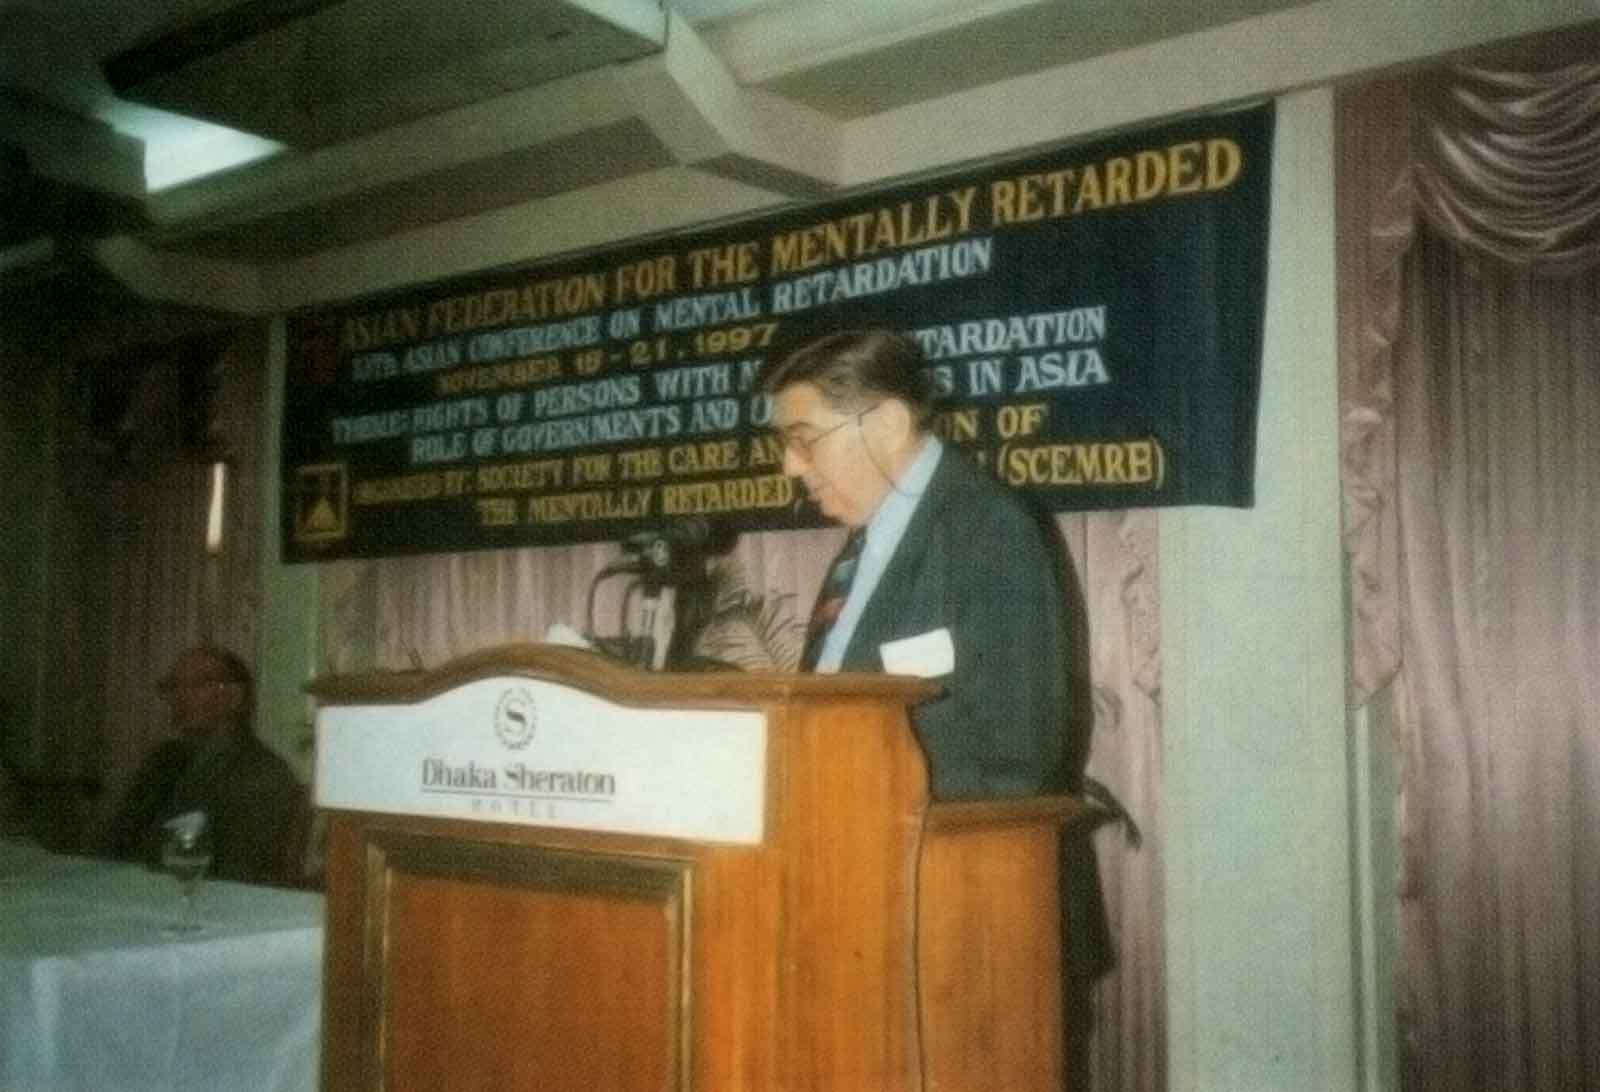 Another honorable speaker at the 13th ACMR Bangladesh, 1997